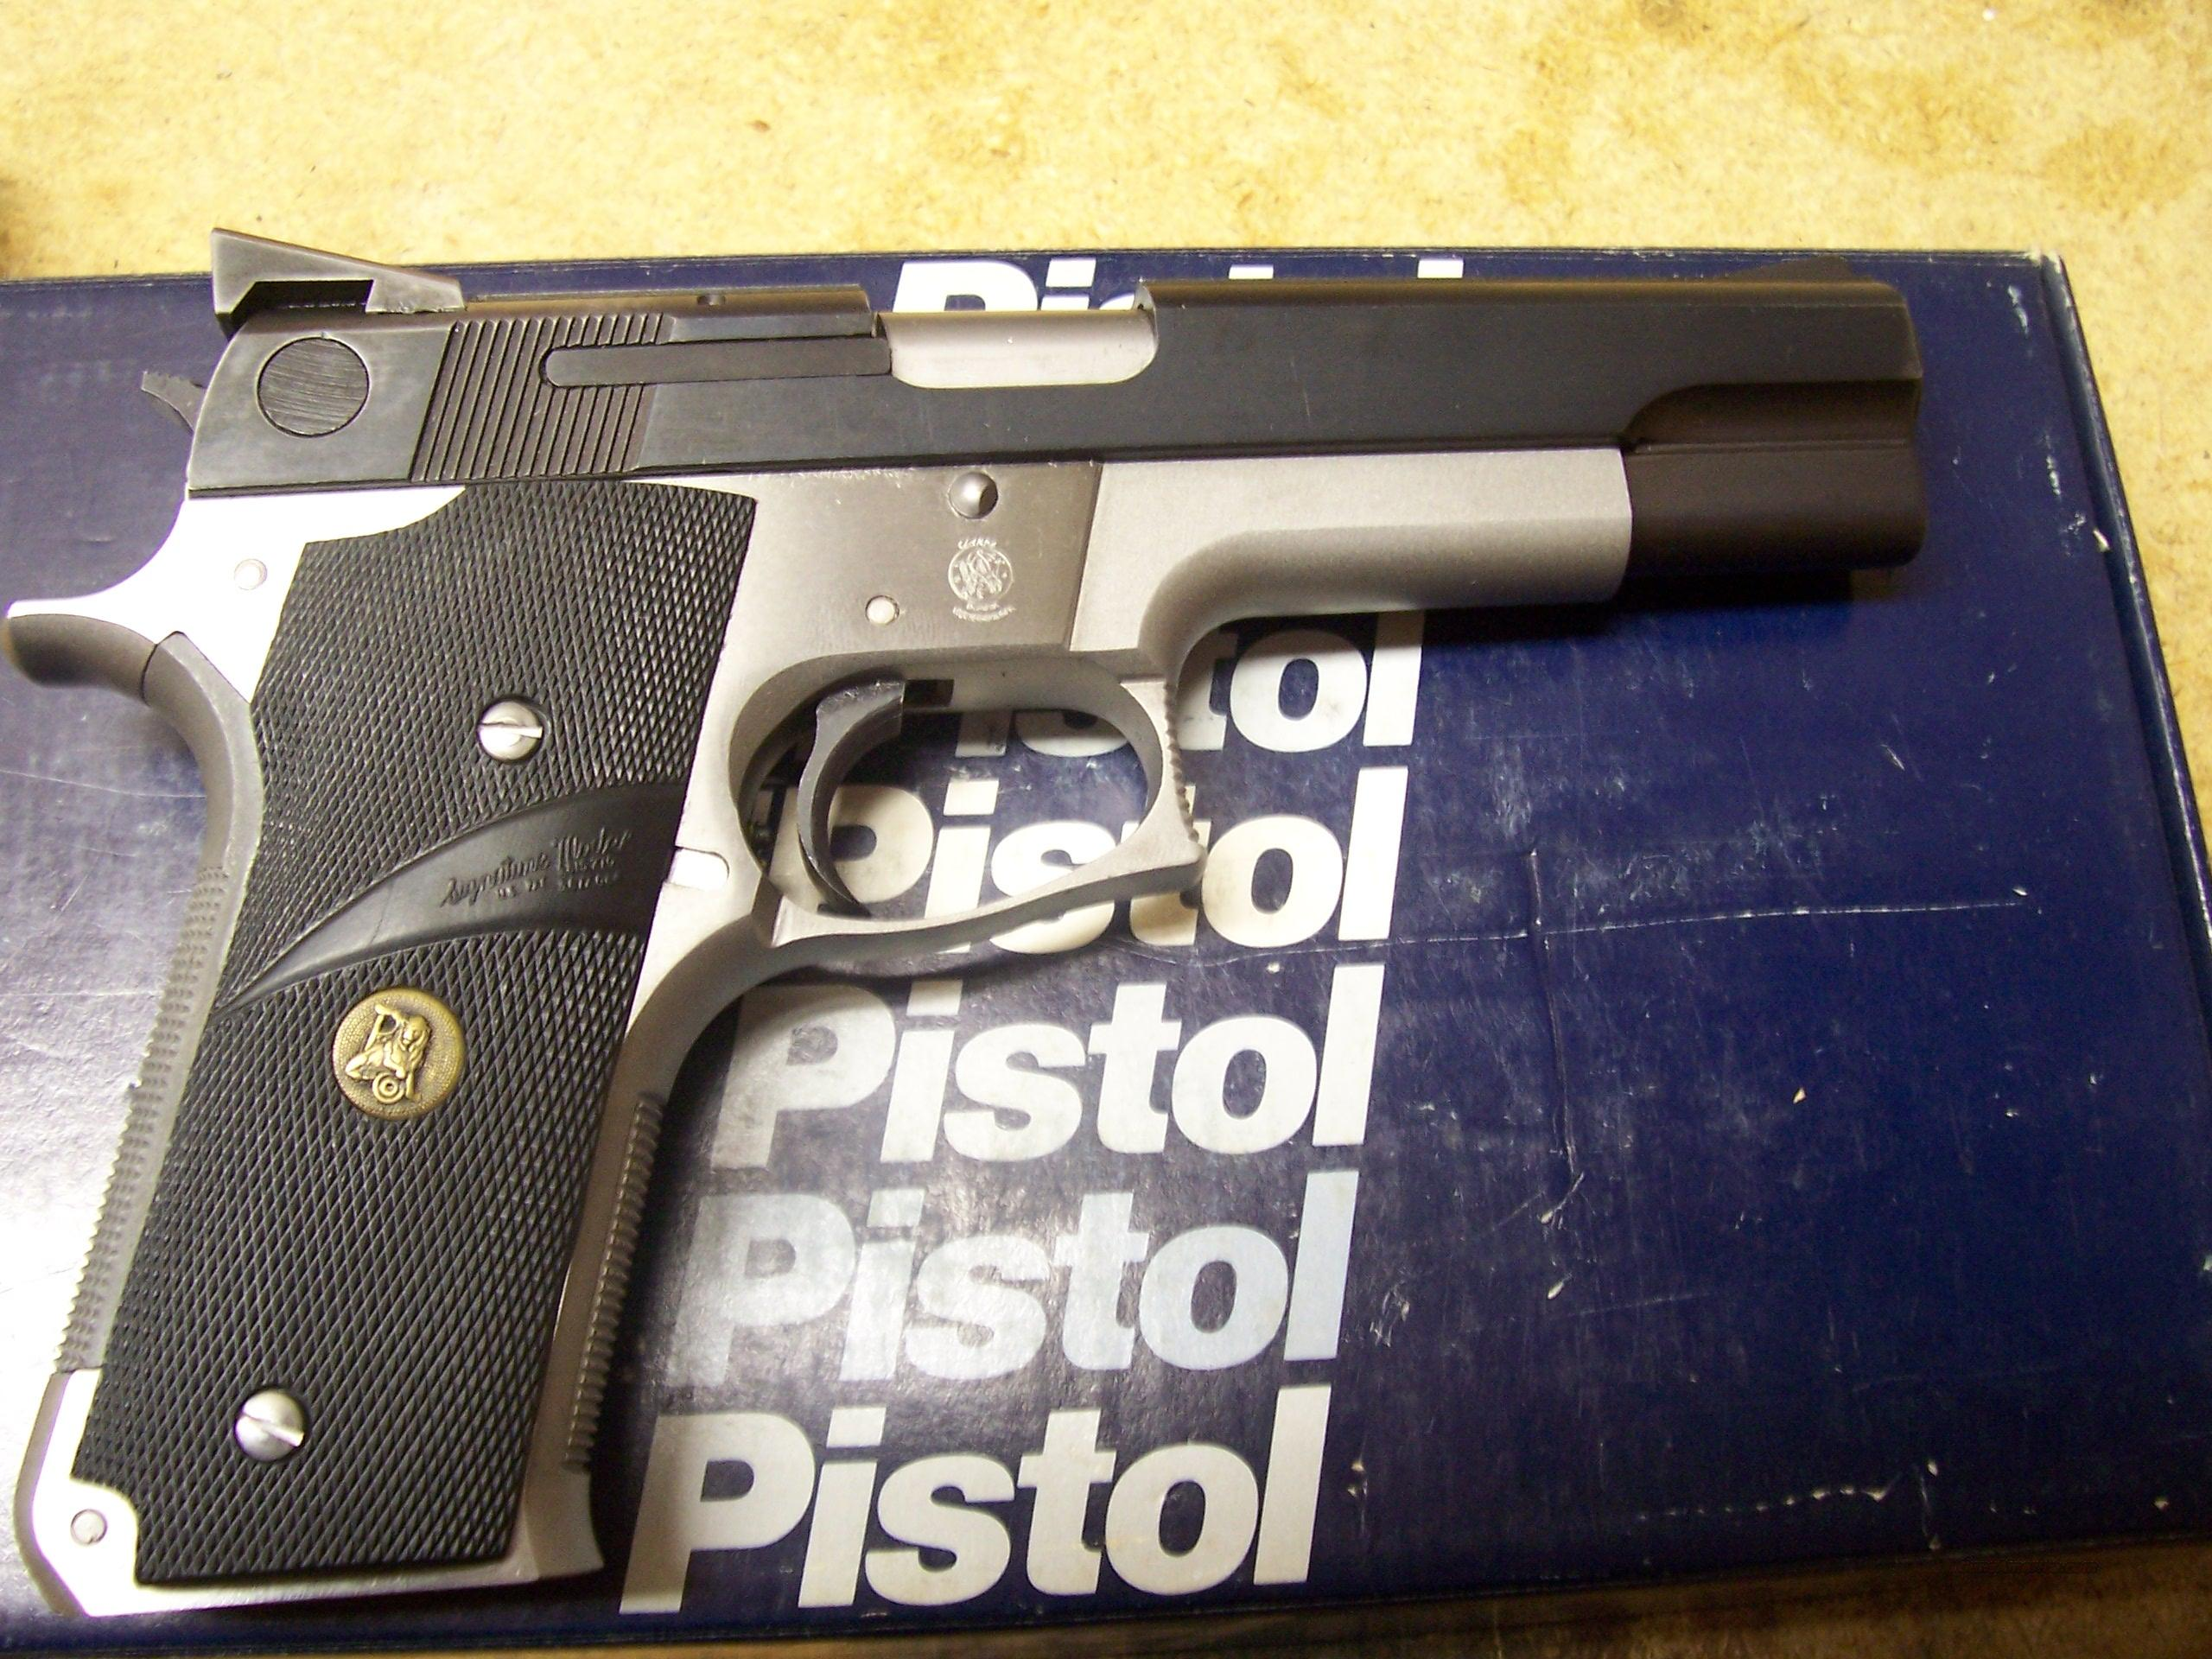 S&W Smith & Wesson 745 .45 ACP  Guns > Pistols > Smith & Wesson Pistols - Autos > Steel Frame